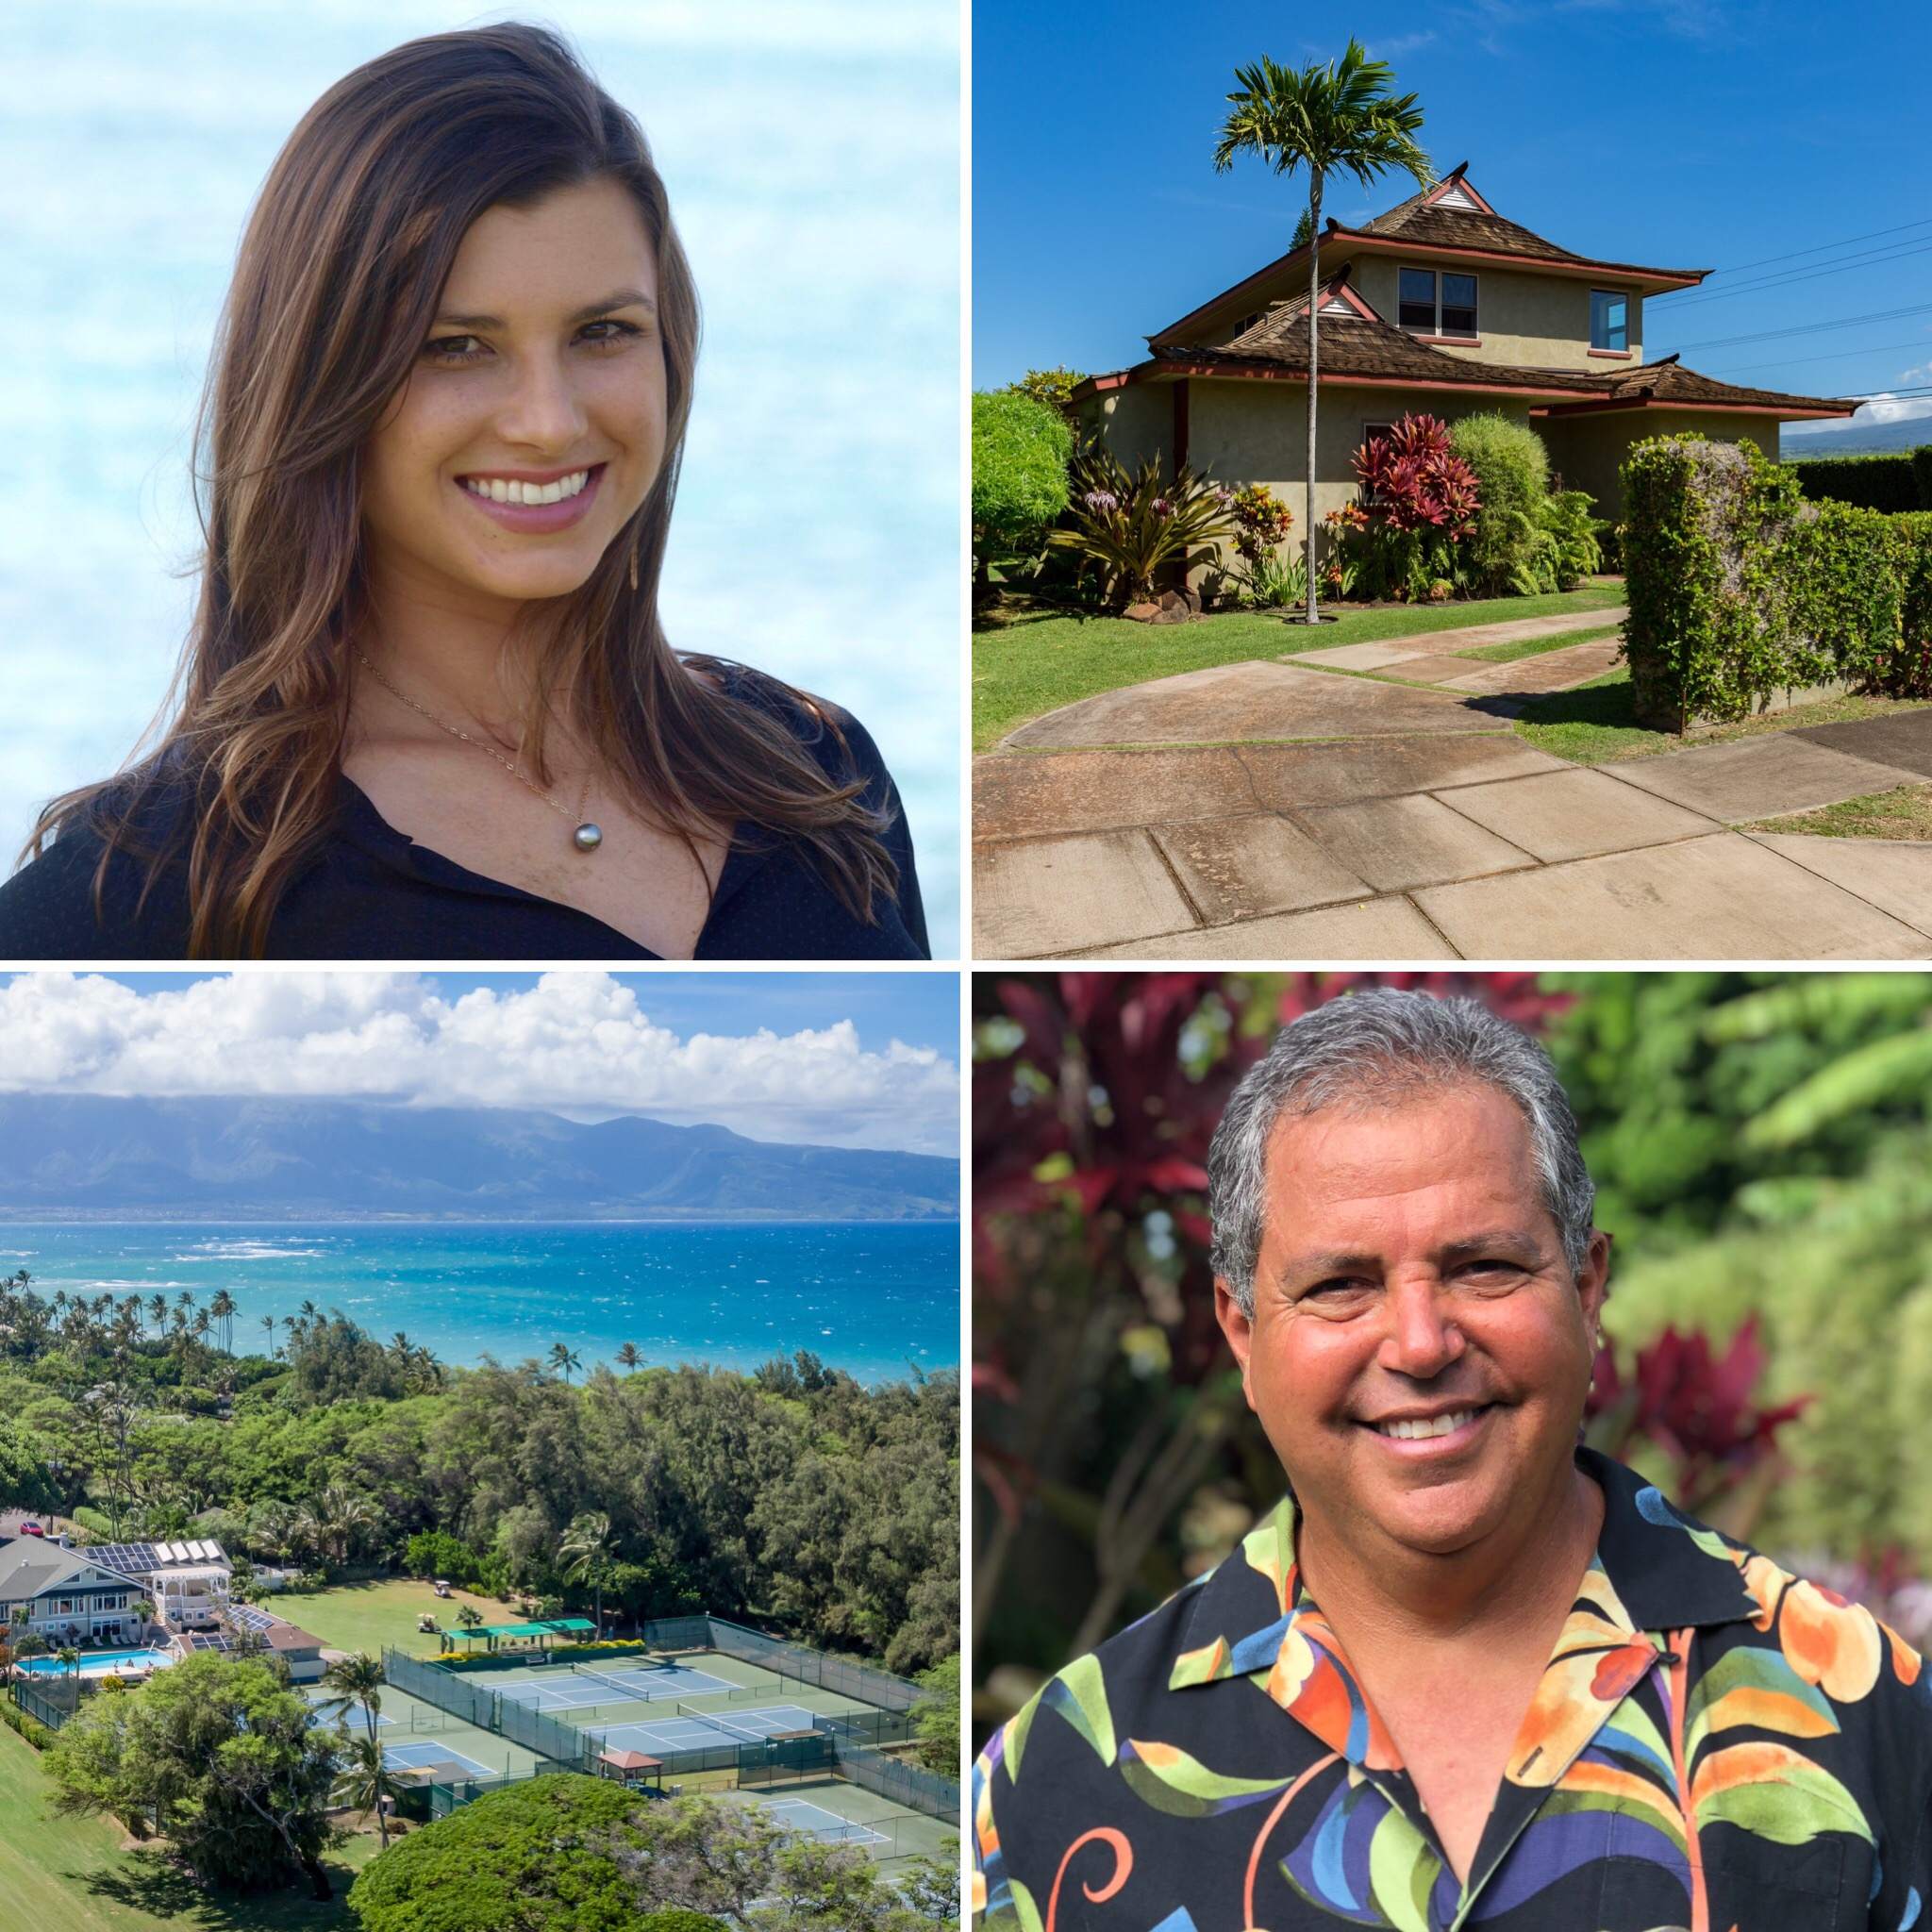 Call us for more information or to schedule a showing!  Martin Lenny R(S) 808-280-3433 Martin@MauiRealEstate.com  Angelynn Bair R(S) 808-268-8320 Angelynn@MauiReal Estate.com   www.MauiRealEstate.com